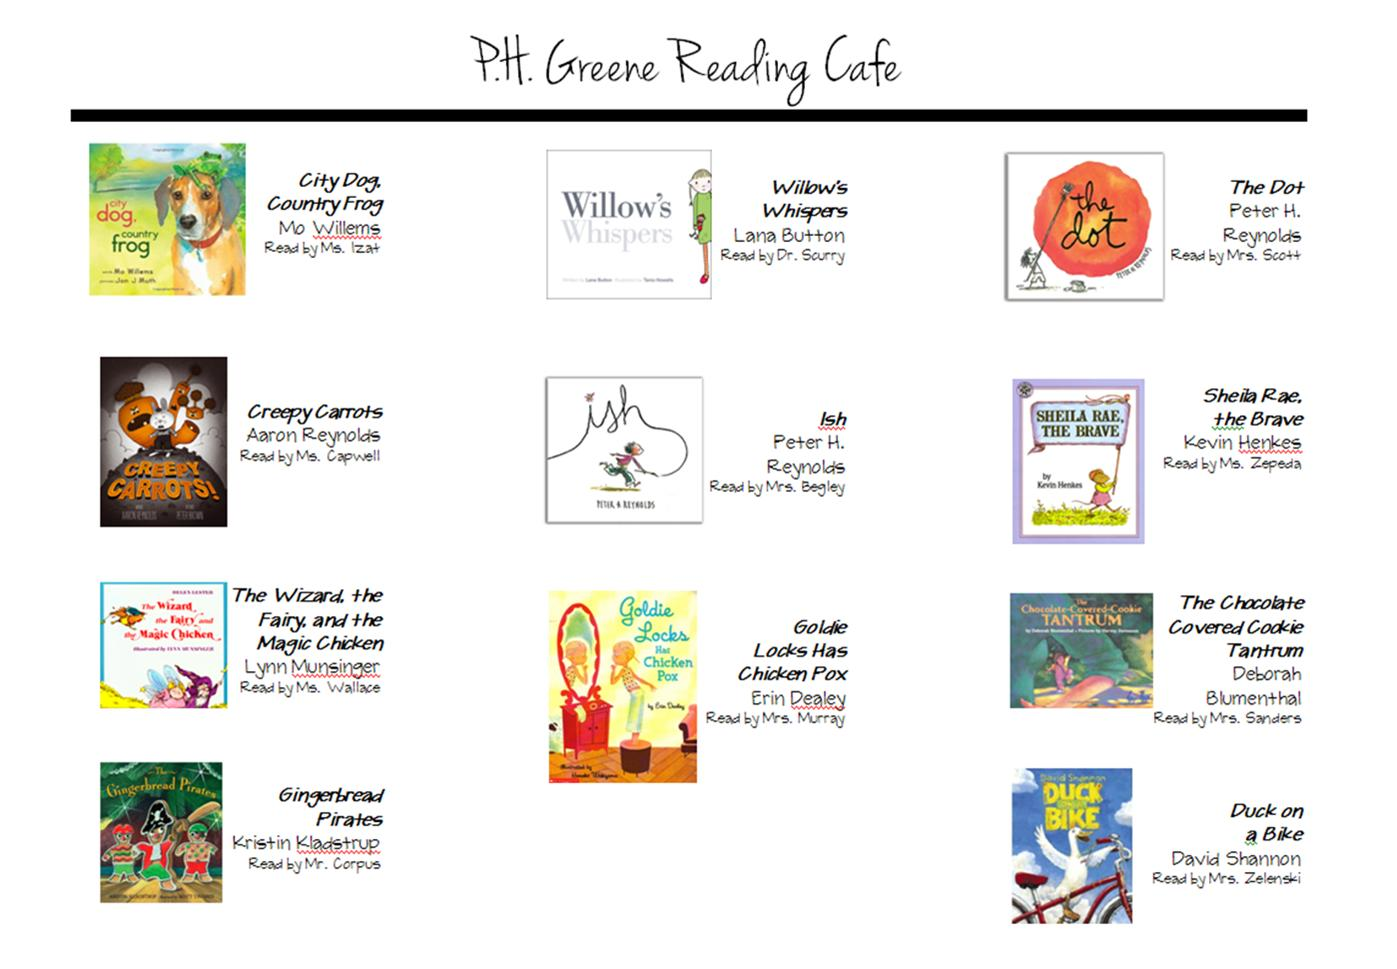 Menu for Reading Cafe